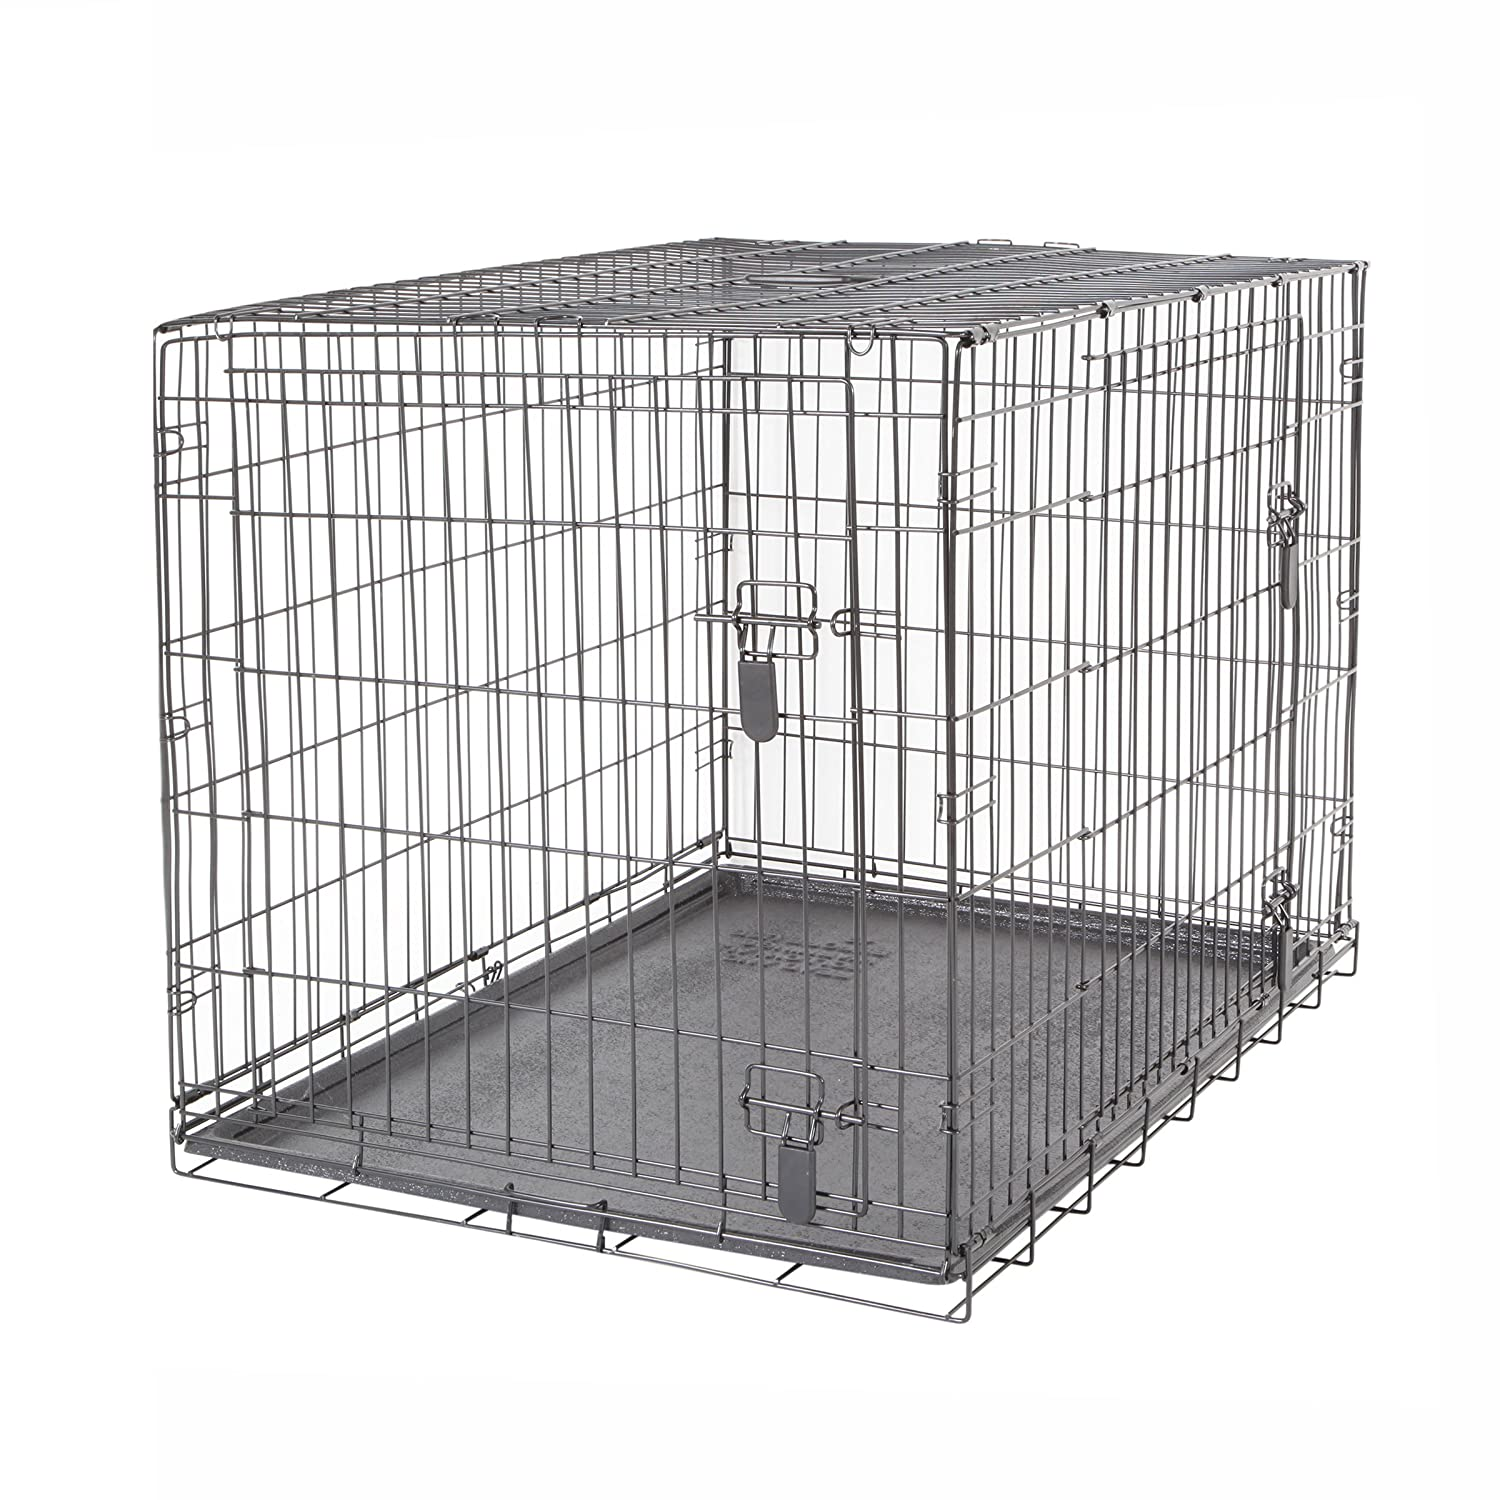 Amazon.com : Dogit 2-Door Wire Home Crate with Divider, XX-Large ...